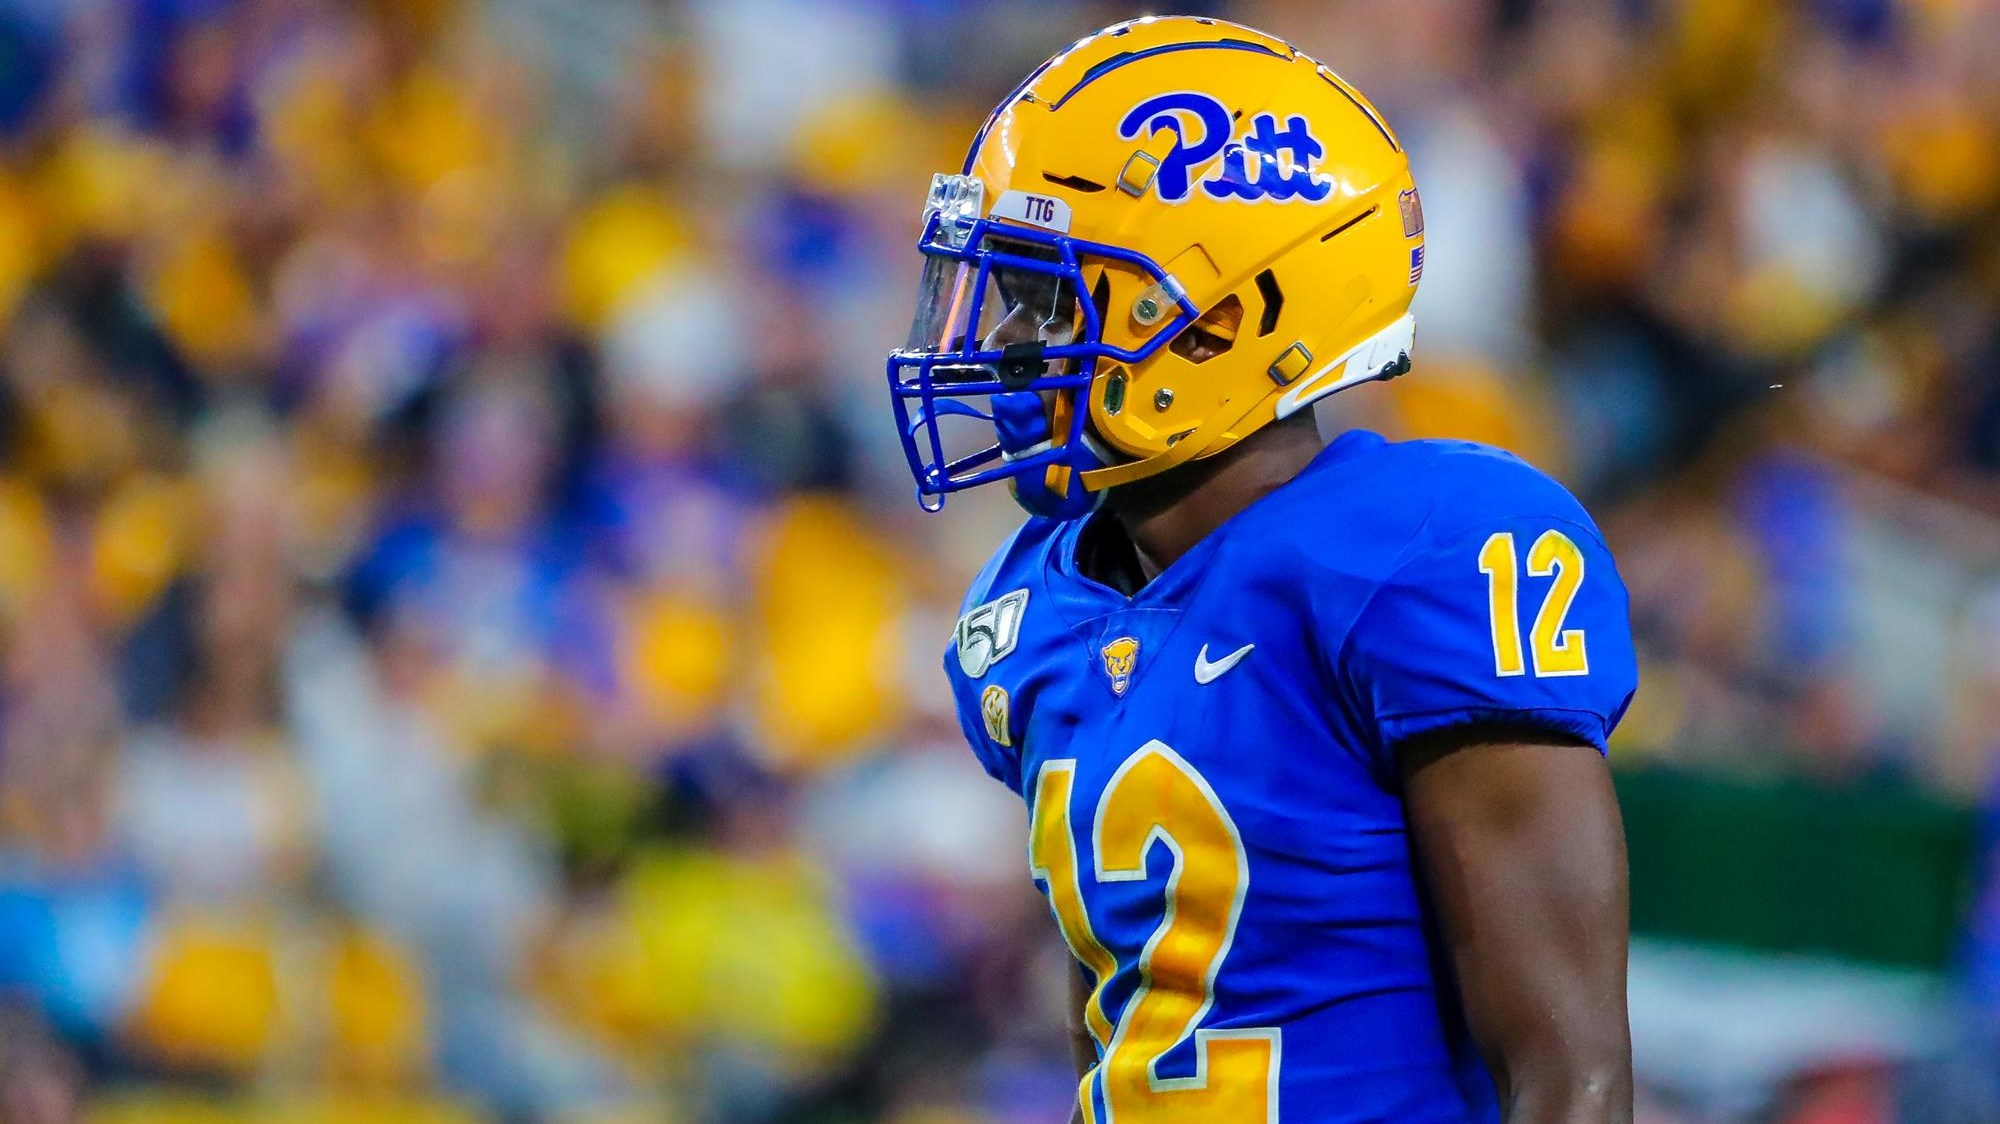 Pitt Panthers Currently in the NFL - Pitt Panthers #H2P